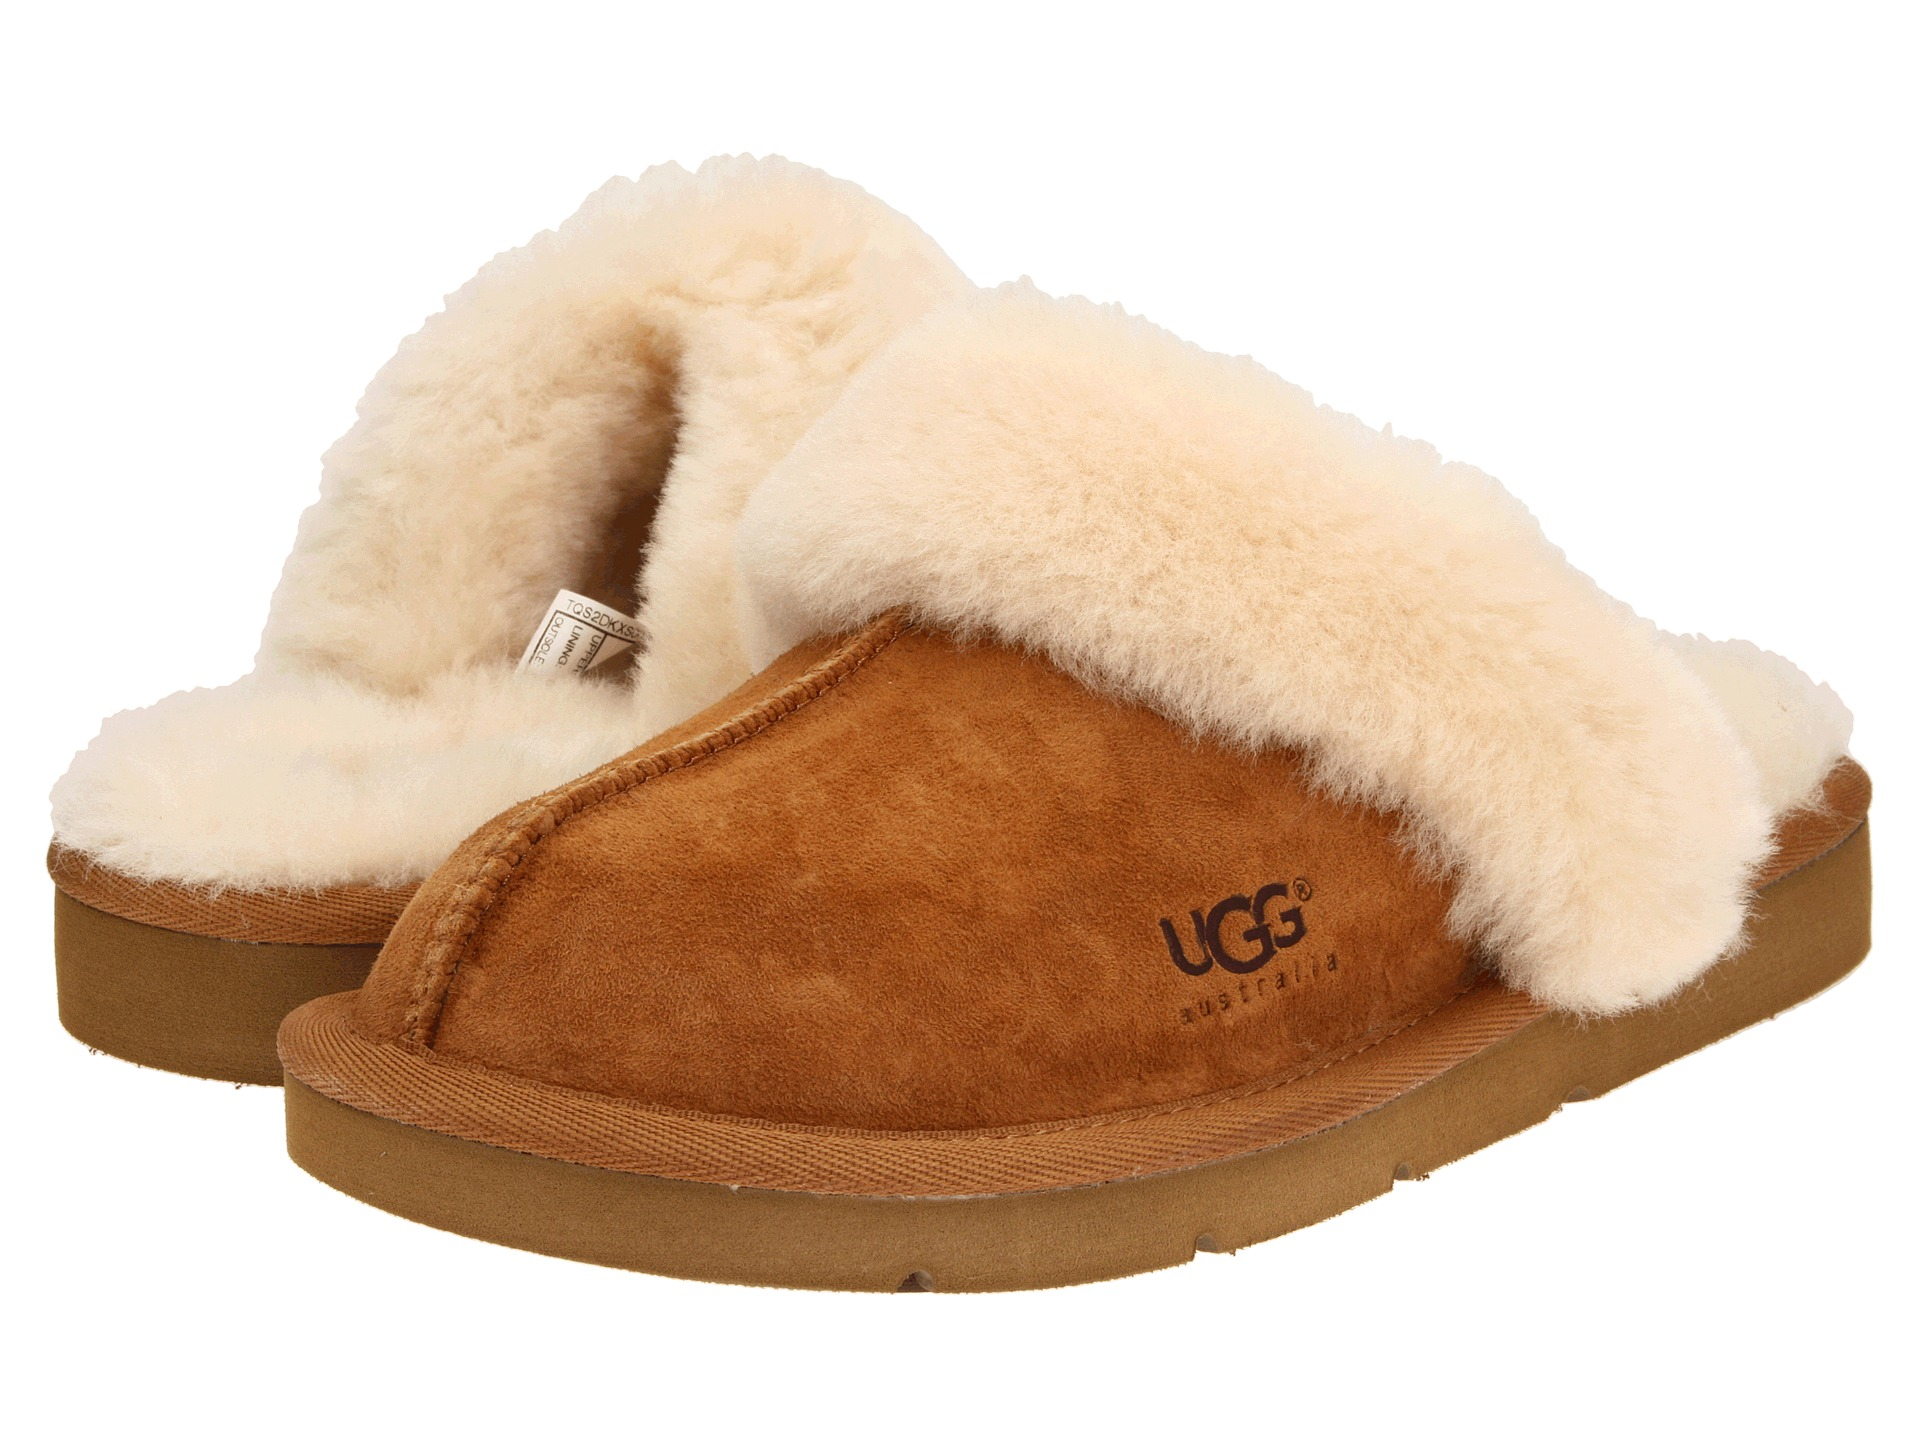 Shop our UGG sale section featuring discounts on Men's, Women's and Kids' UGG products ideal for any occasion: from cold weather to weekend getaways, formal events, and everyday wear.